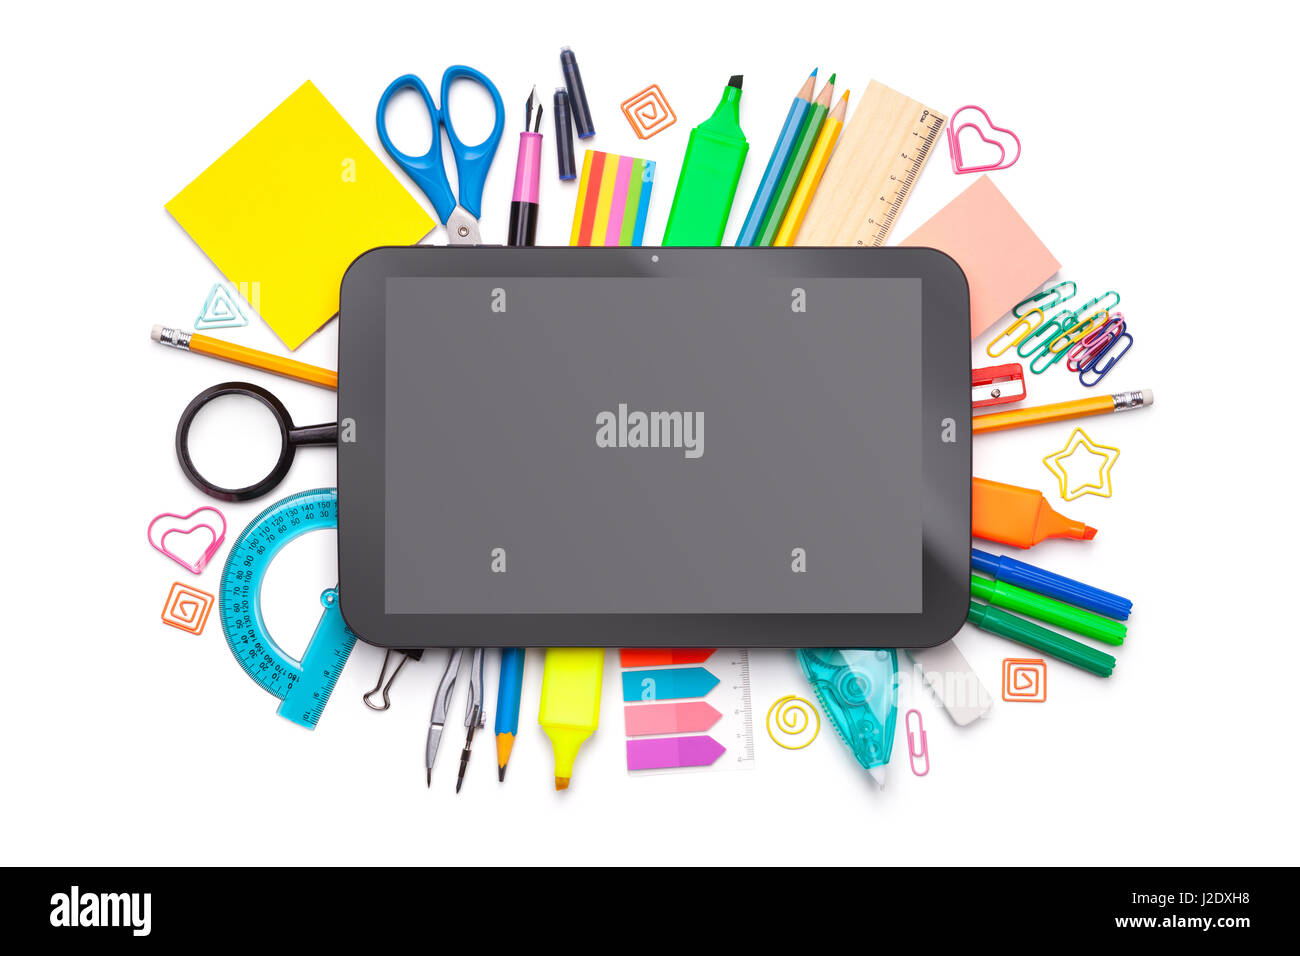 School concept. Tablet over school supplies isolated on white background. Top view - Stock Image